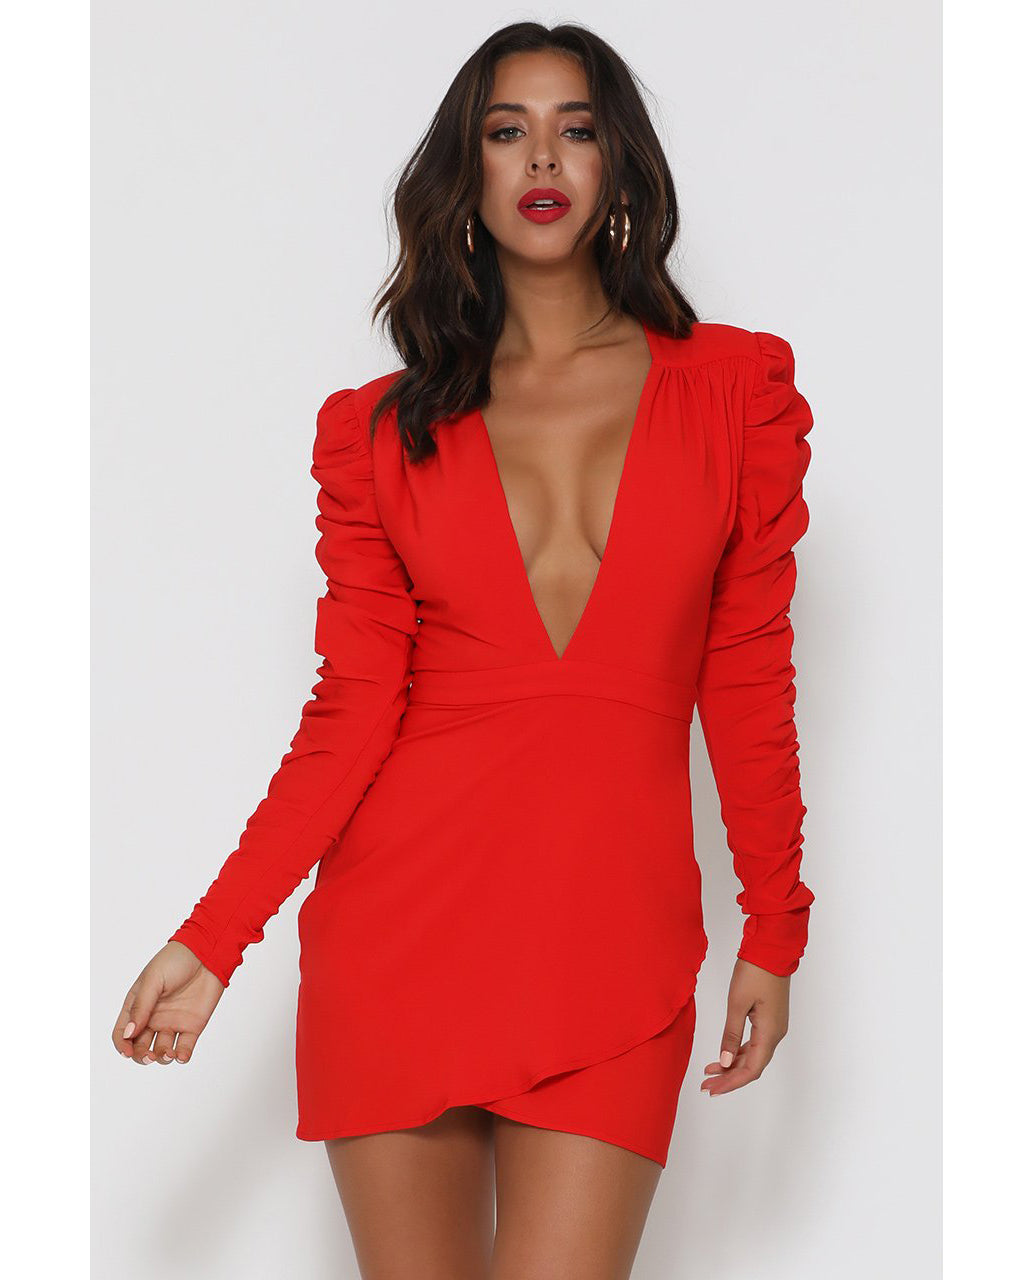 RUNAWAY THE LABEL LARA RED DRESS